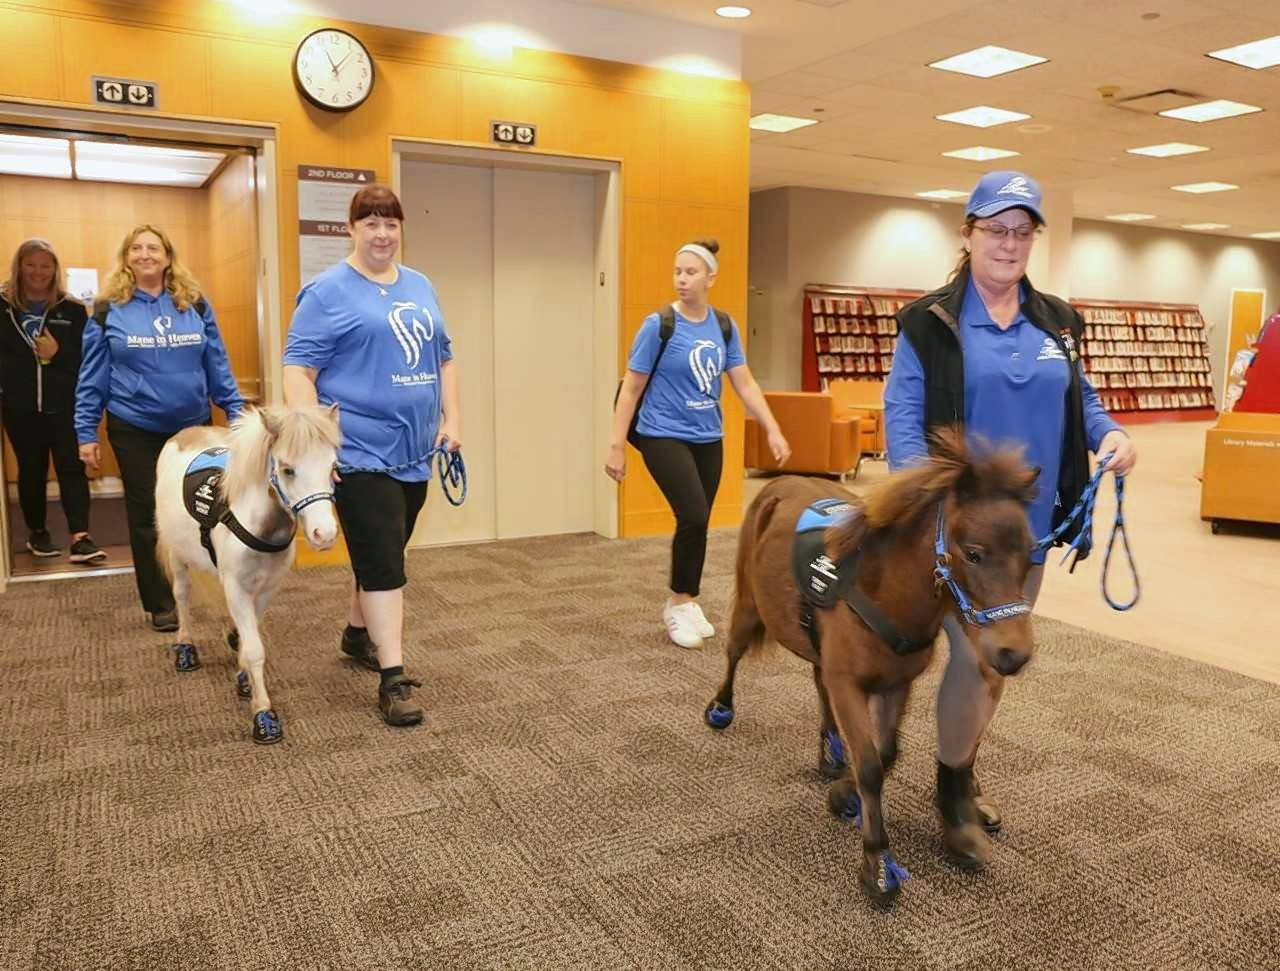 Hope and Winnie, miniature therapy ponies from Barrington-based Mane in Heaven, recently paid a visit to the Arlington Heights Memorial Library.